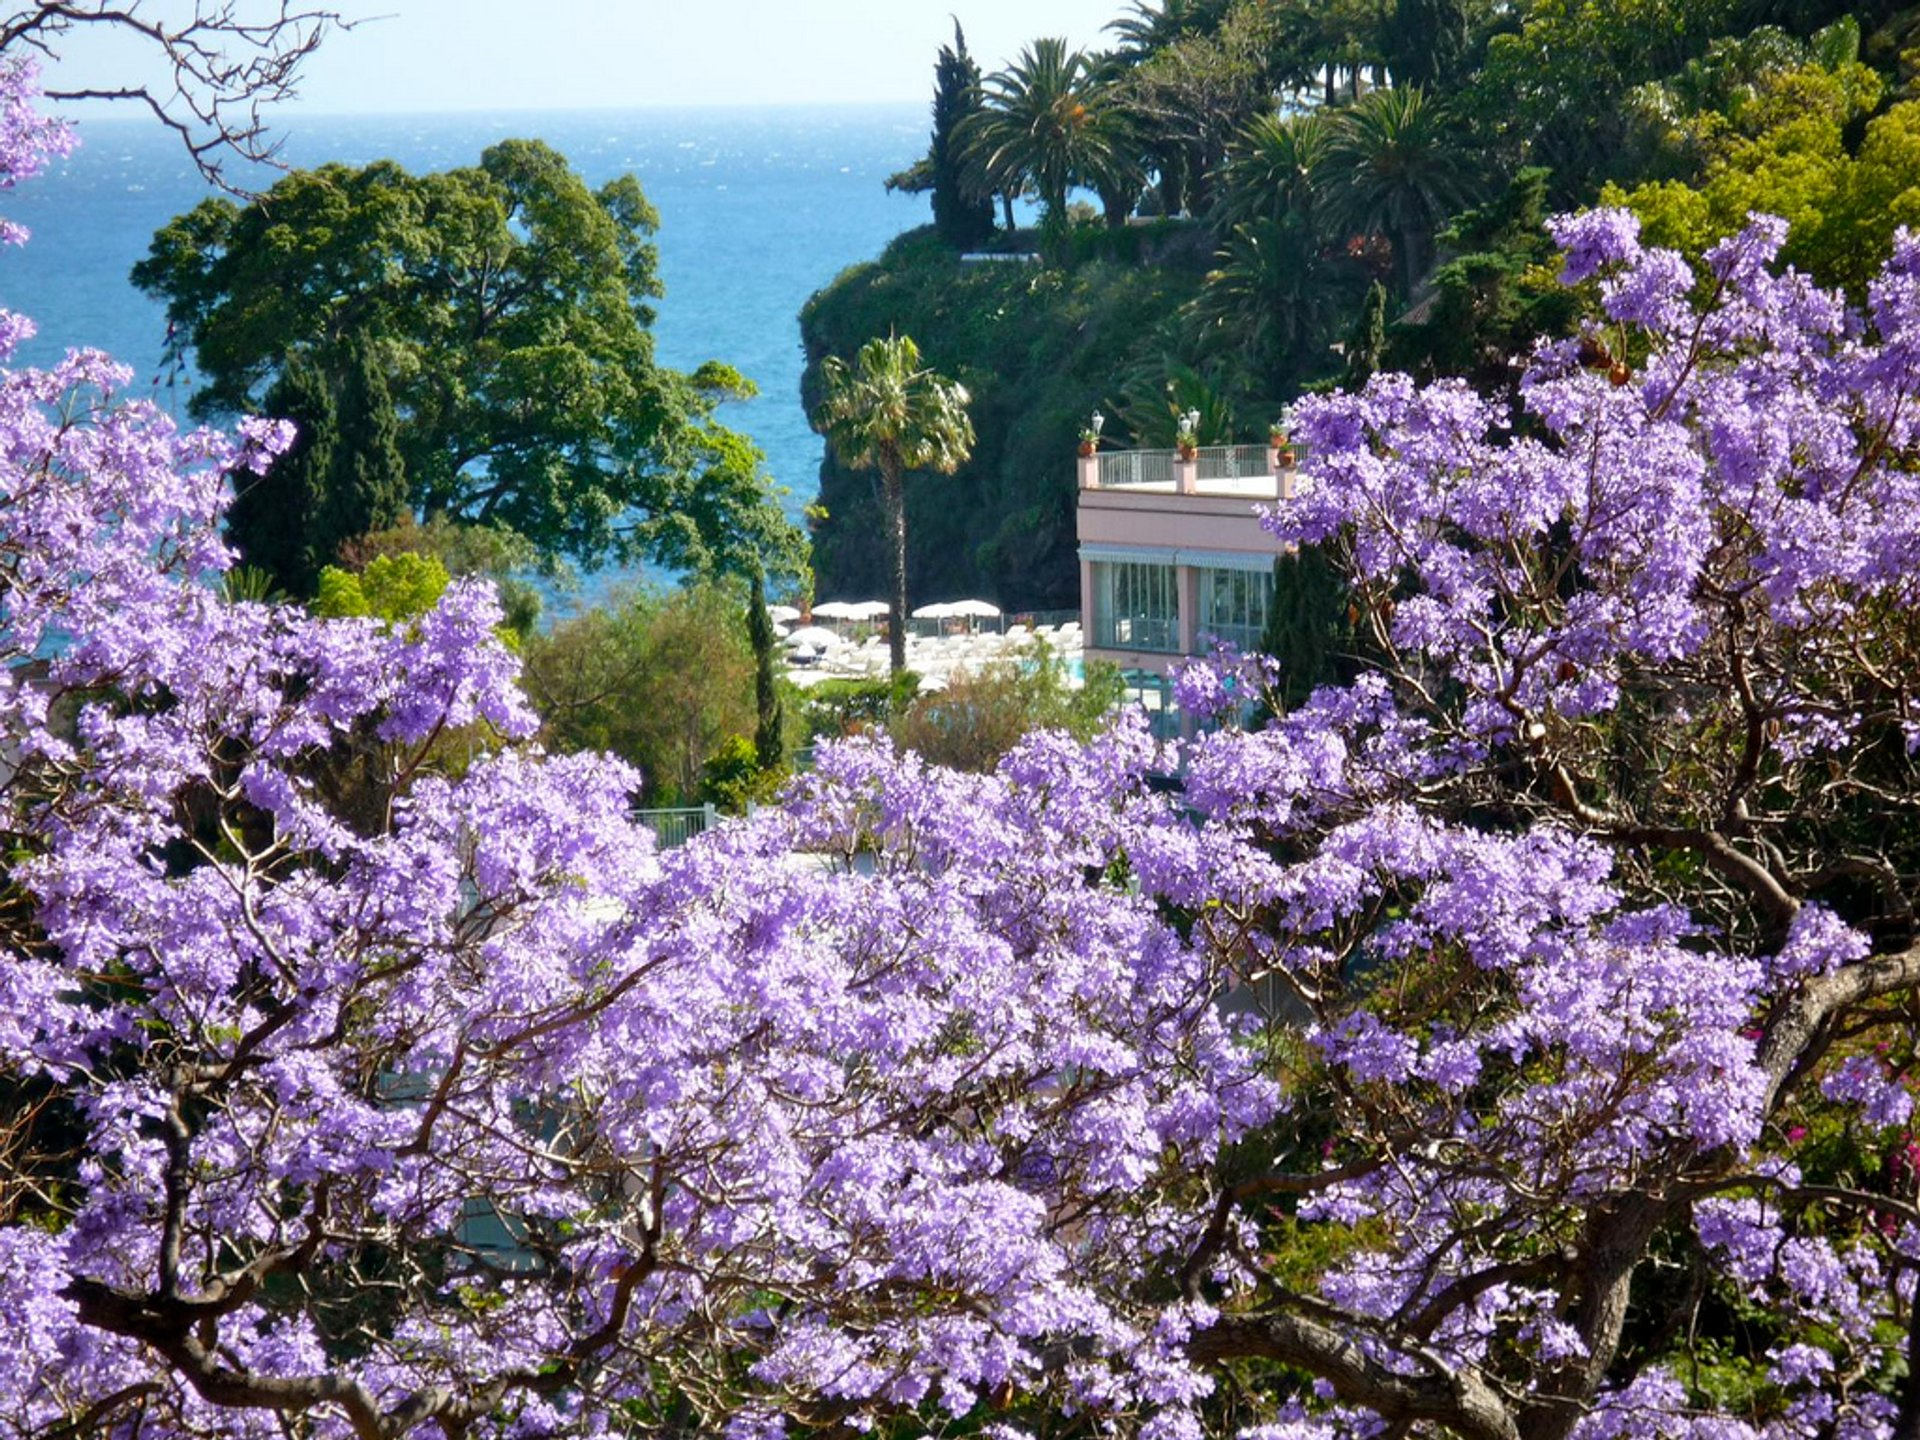 Jacaranda Trees in Bloom in Madeira - Best Season